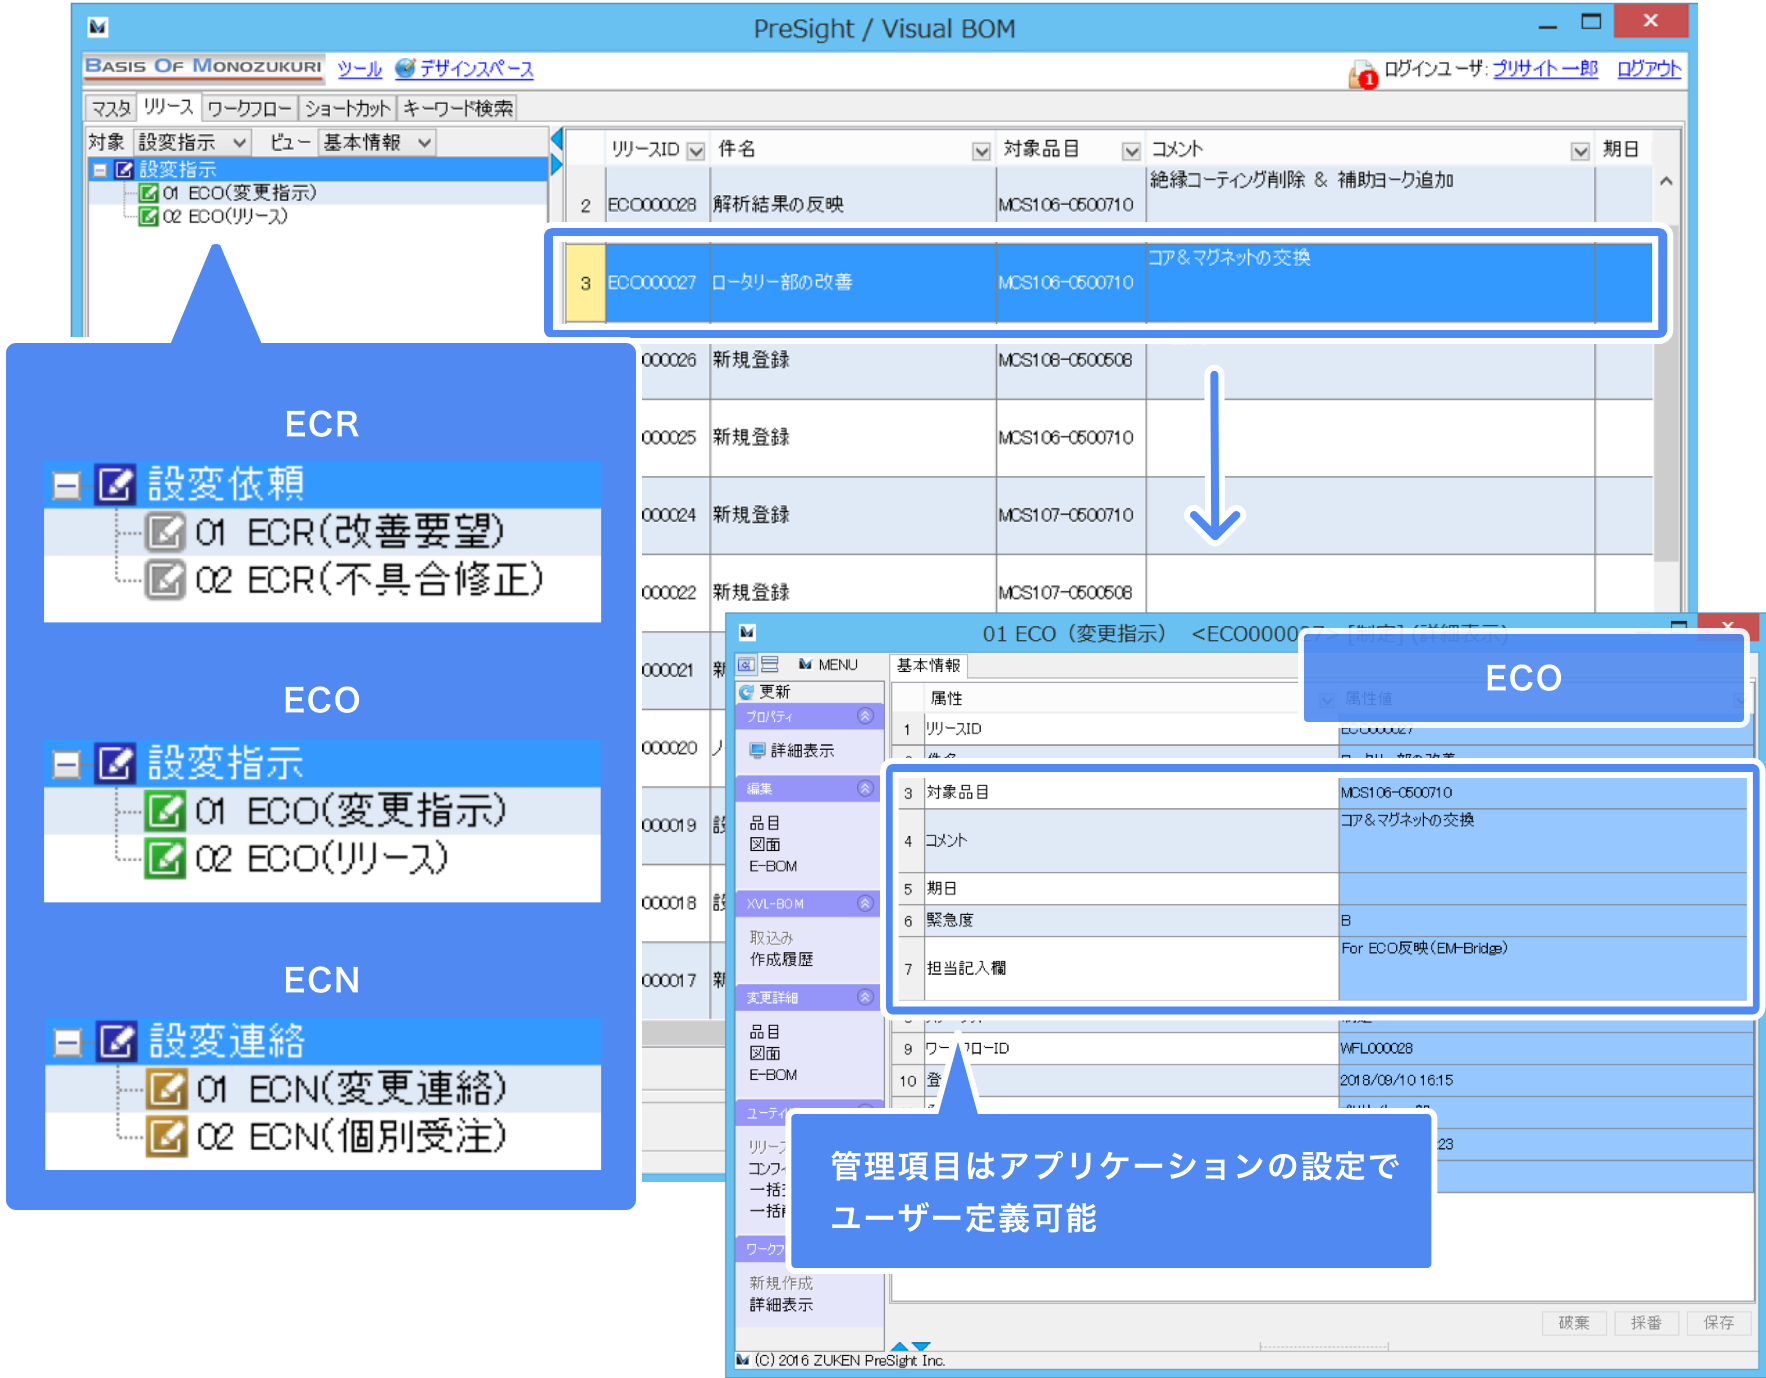 VisualBOMのECR・ECO・ECN